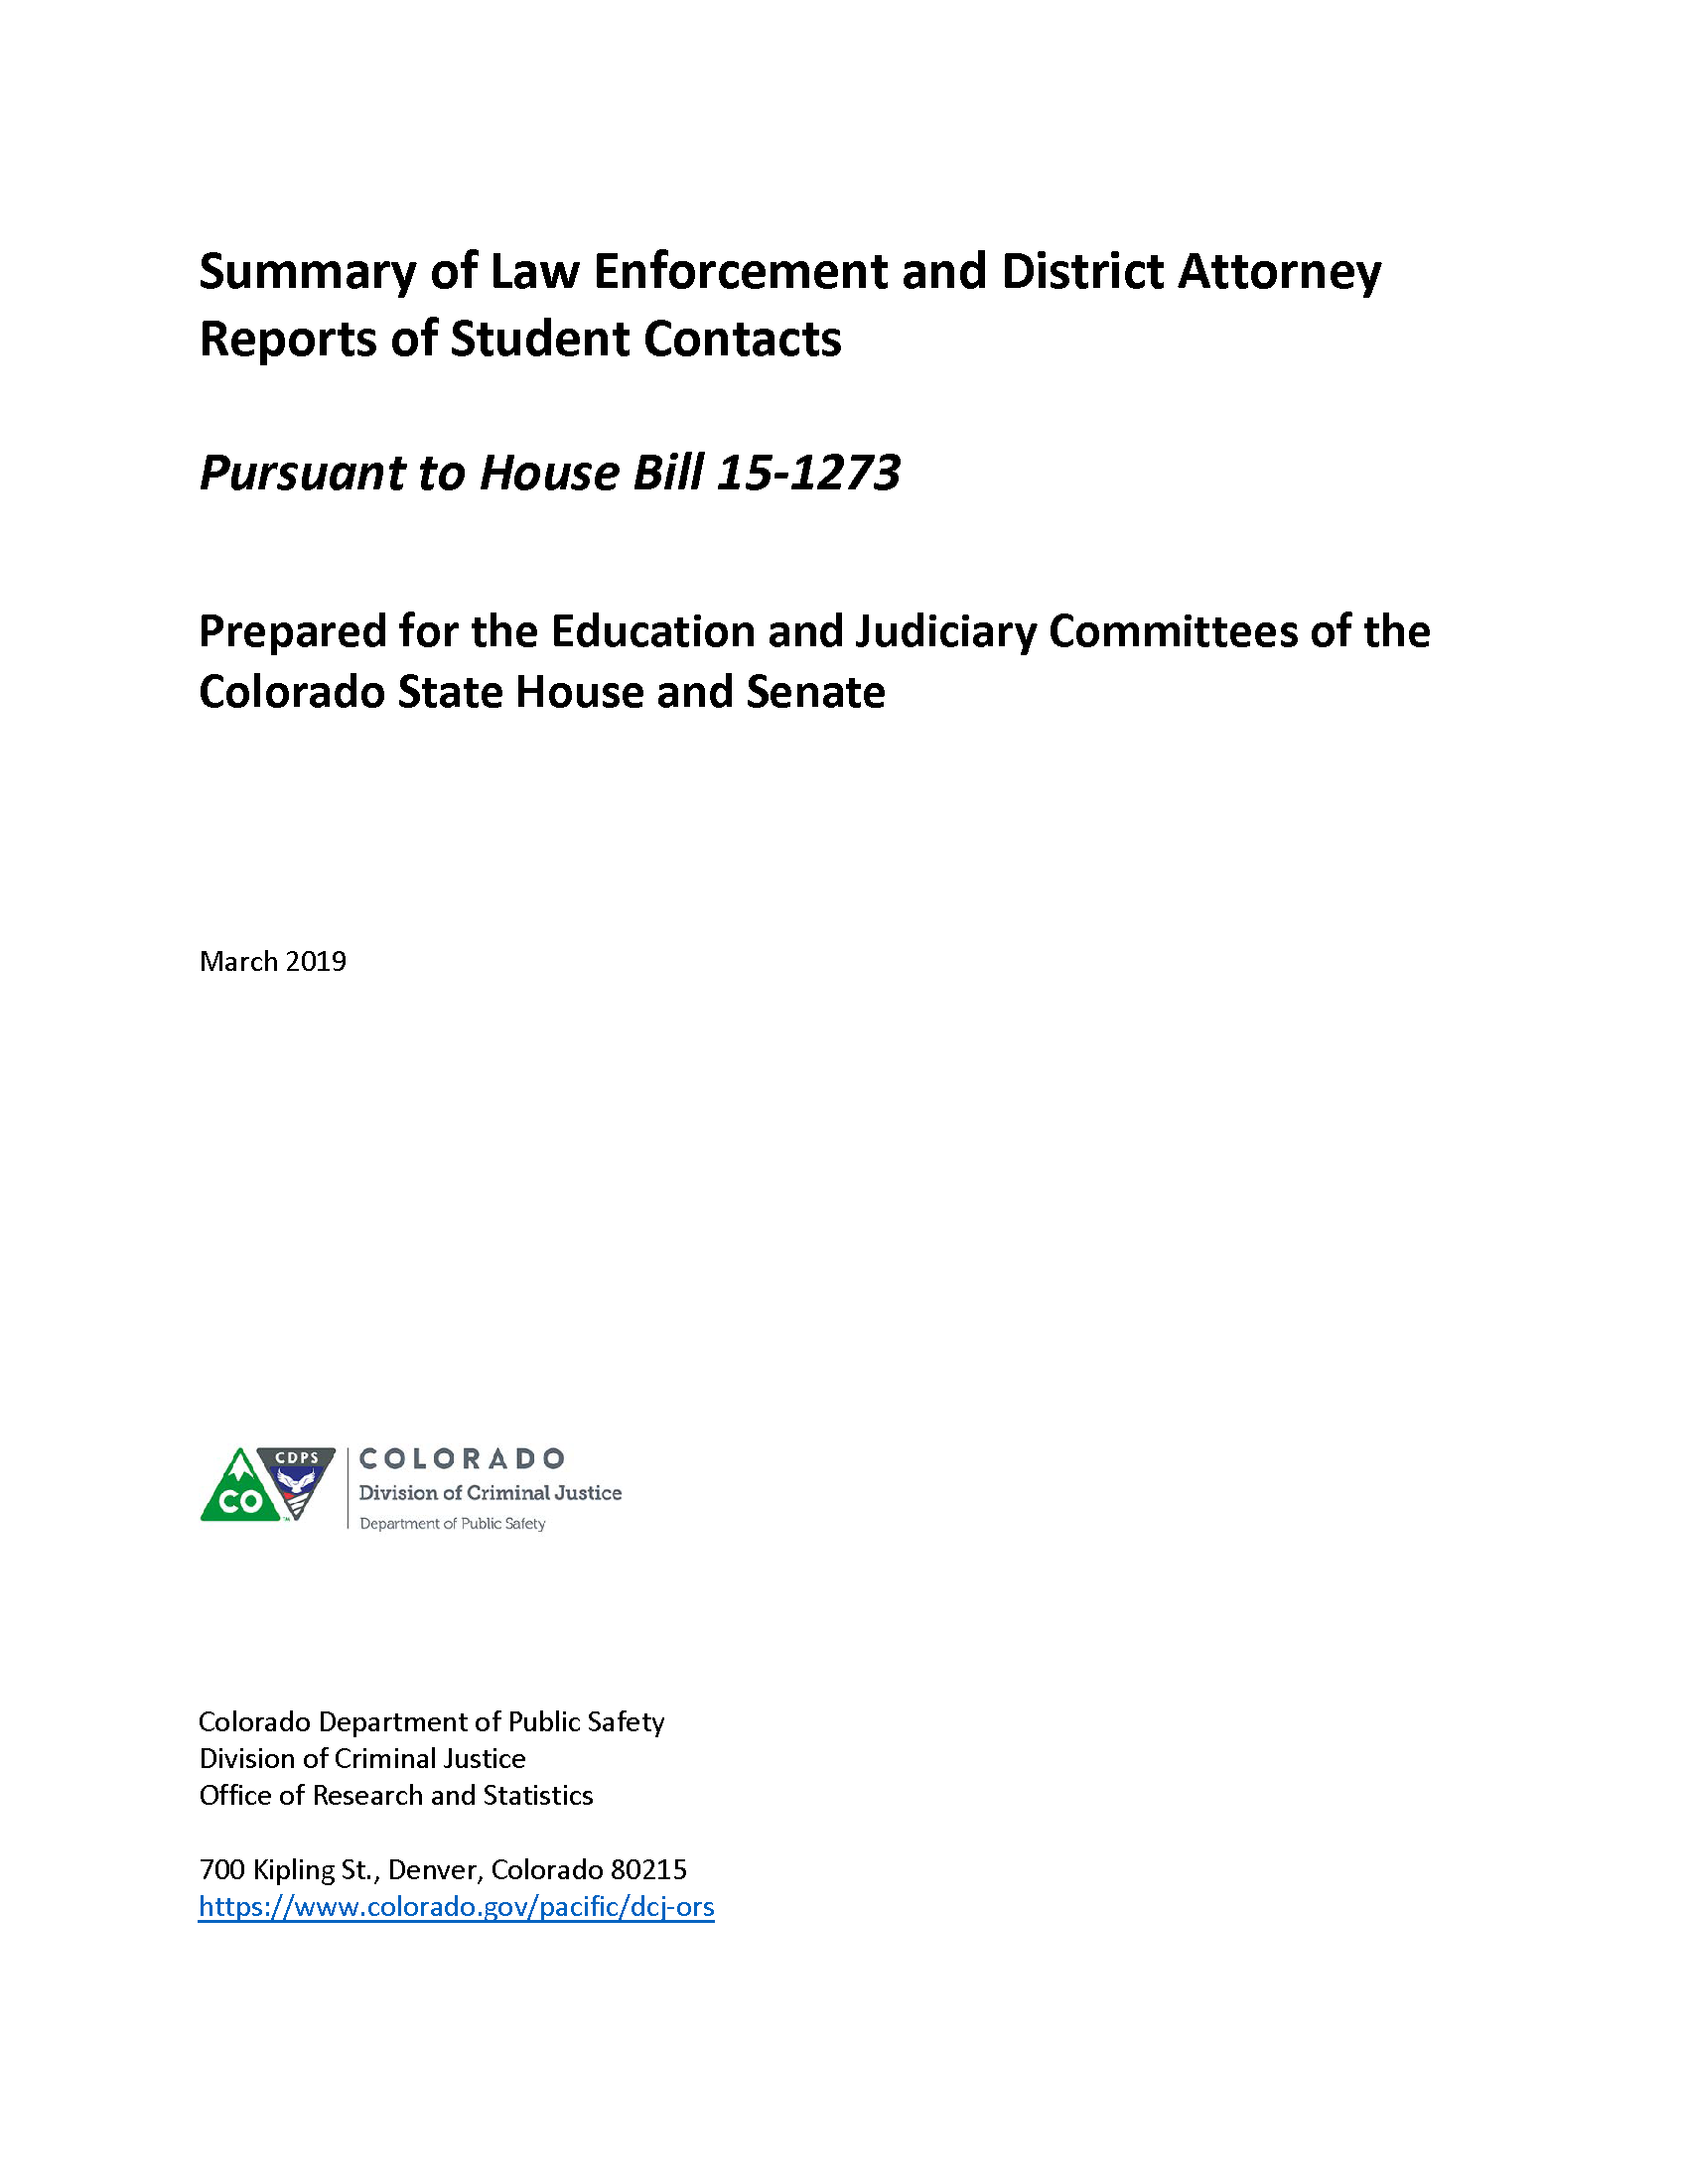 Summary of Law Enforcement and District Attorney Reports of Student Contacts (March 2019)